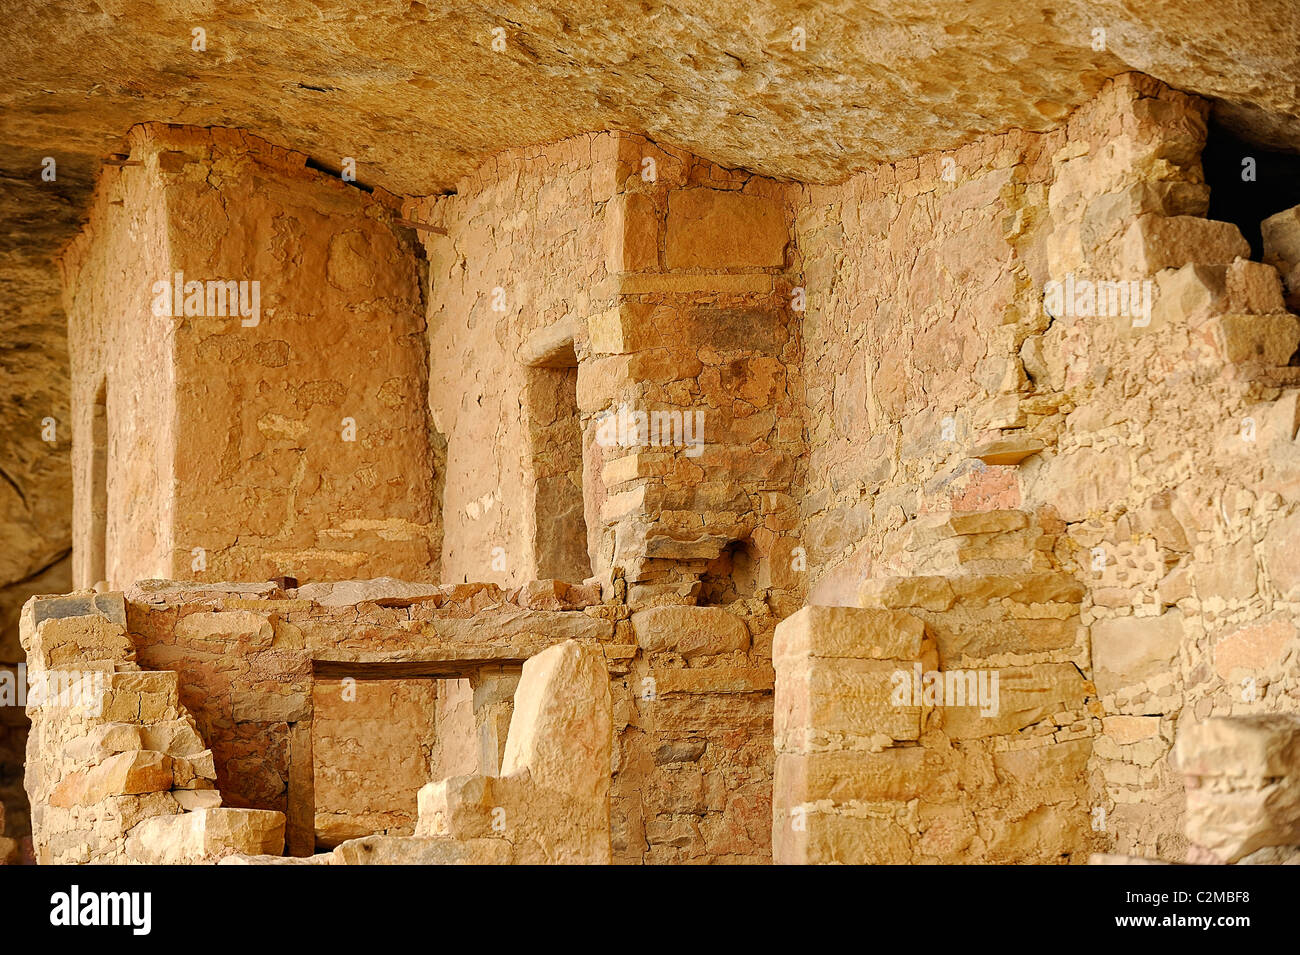 Dwellings in Balcony House, cliff dwelling in Mesa Verde National Park Stock Photo